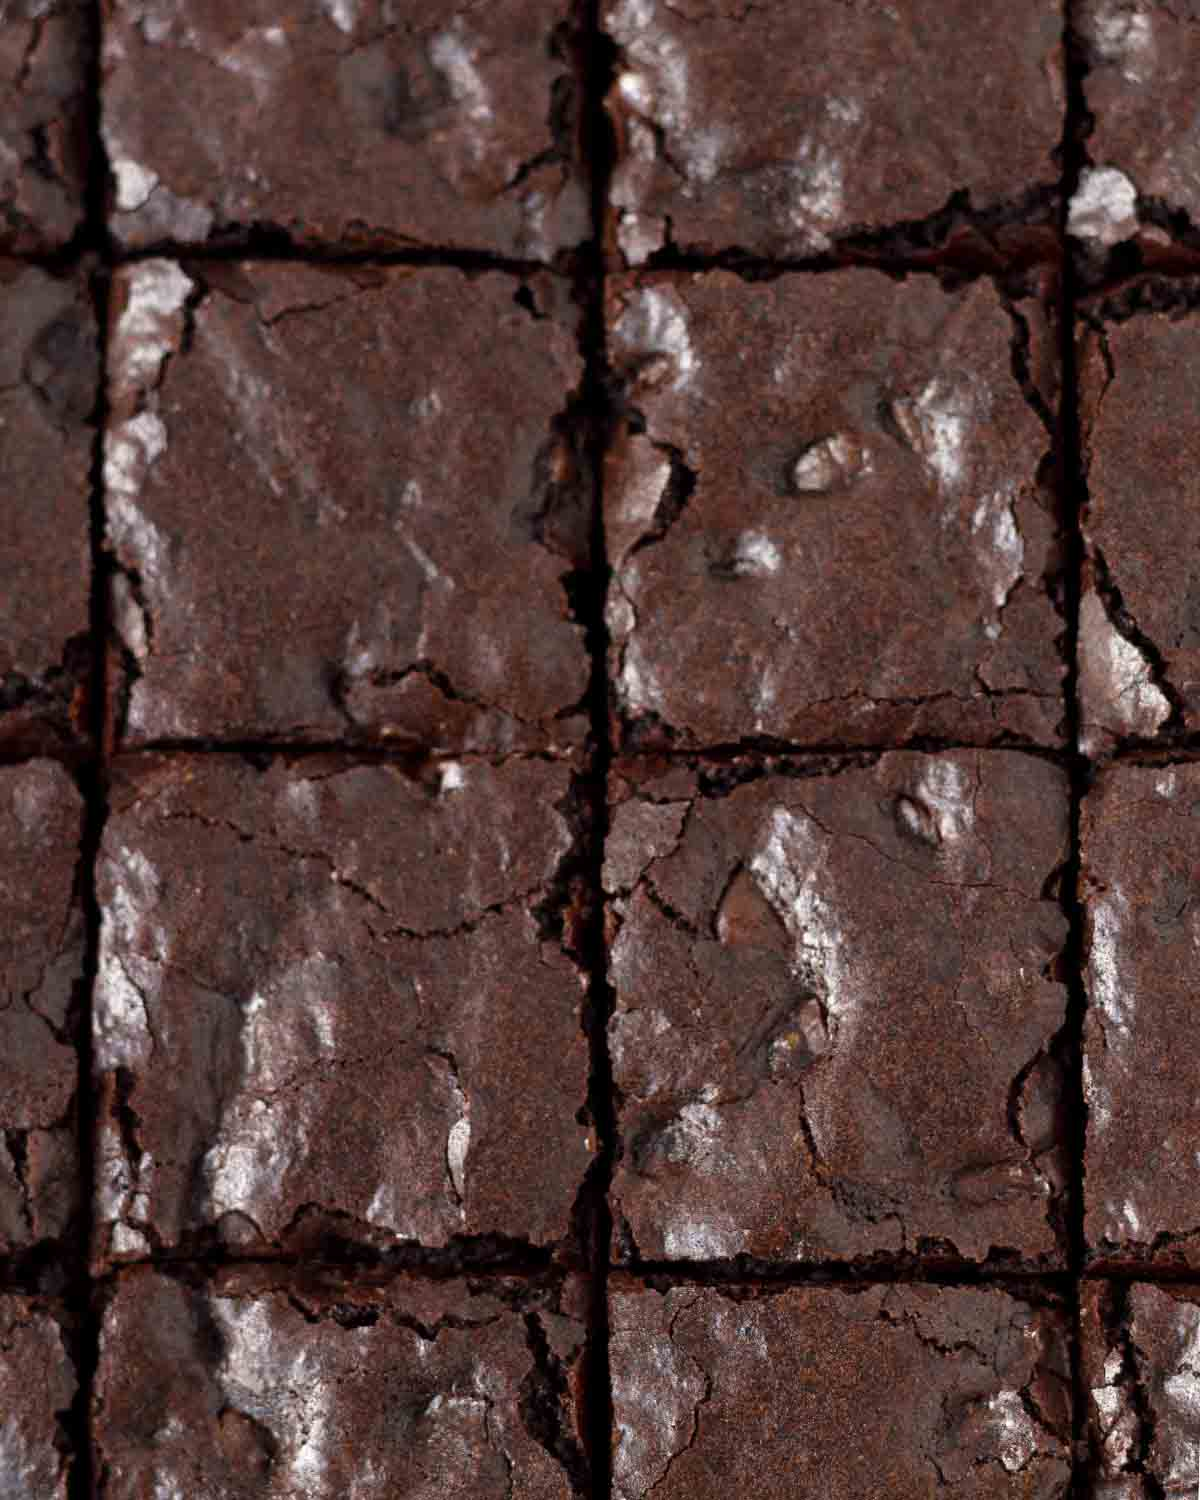 An overhead shot of sliced vegan gluten-free brownies, the shot shows that the brownies have a crinkly, crackly top.